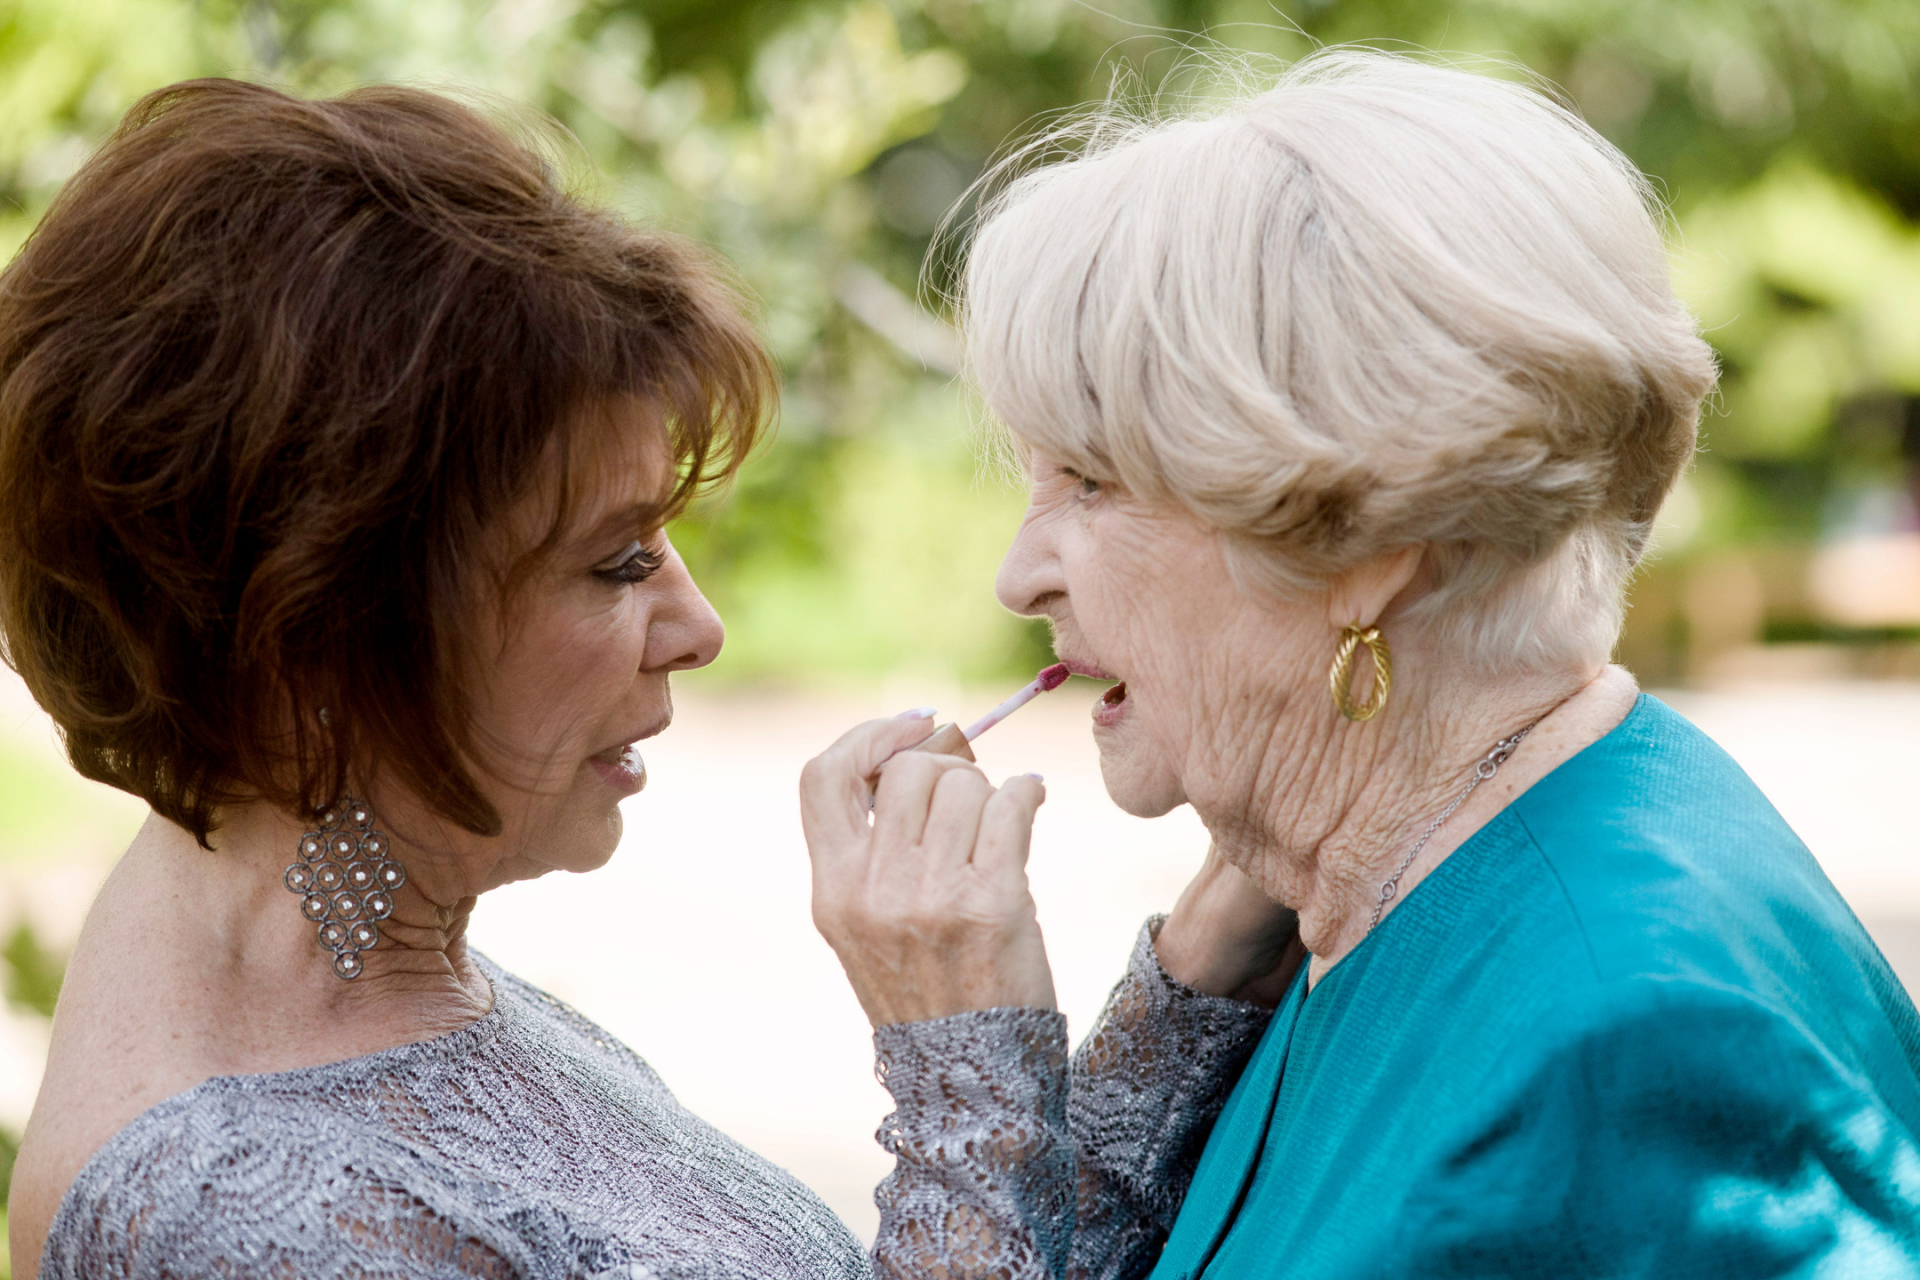 Japanese Friendship Garden Elopement Image - AZ Photography | A woman helps another reapply her lip gloss, unintentionally mirroring the other woman's open mouth as she puts it on